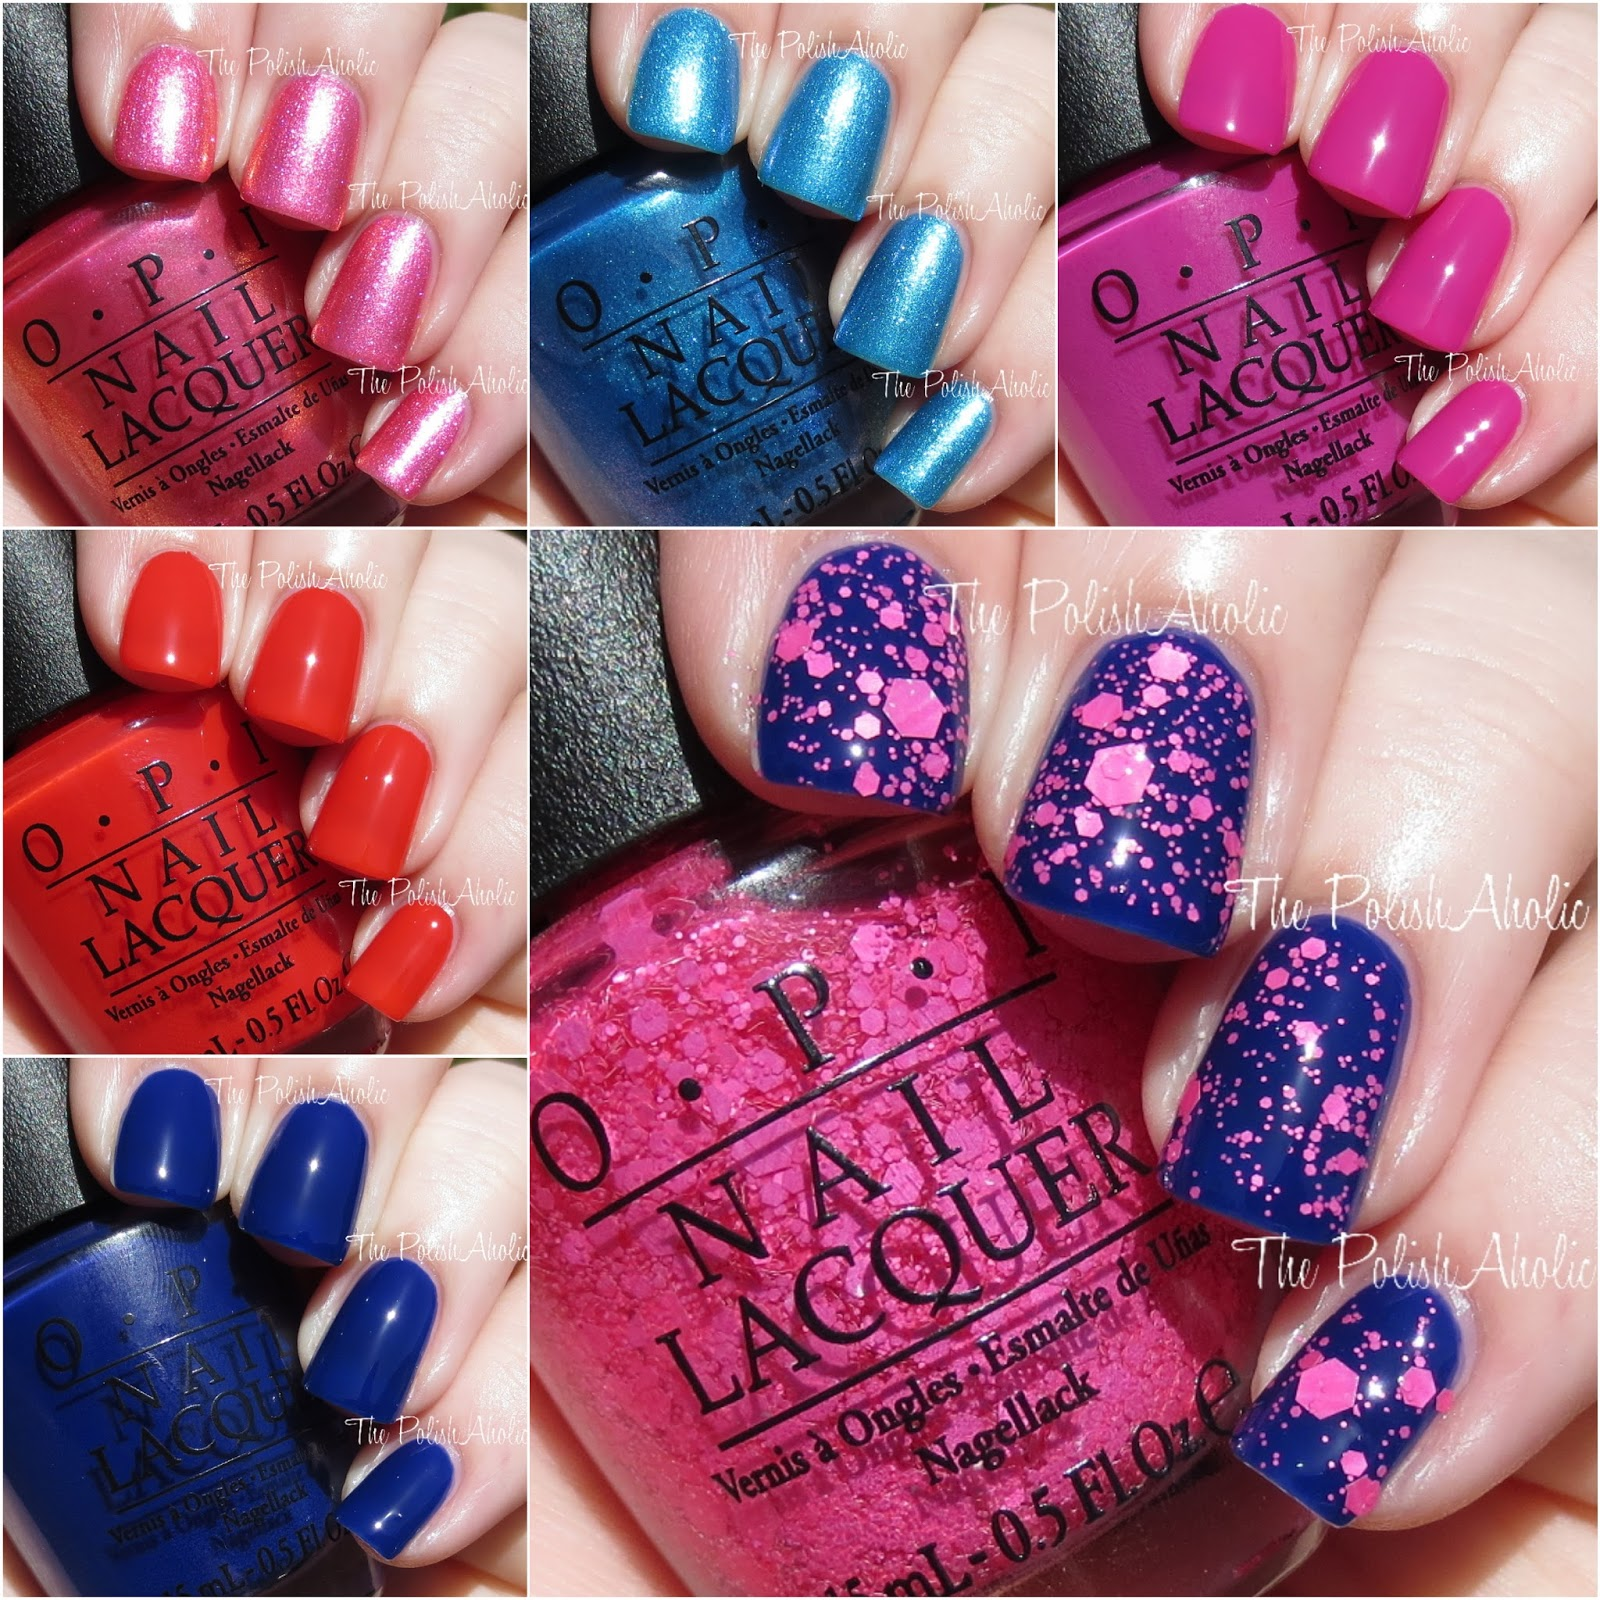 the polishaholic opi 2015 brights collection swatches review